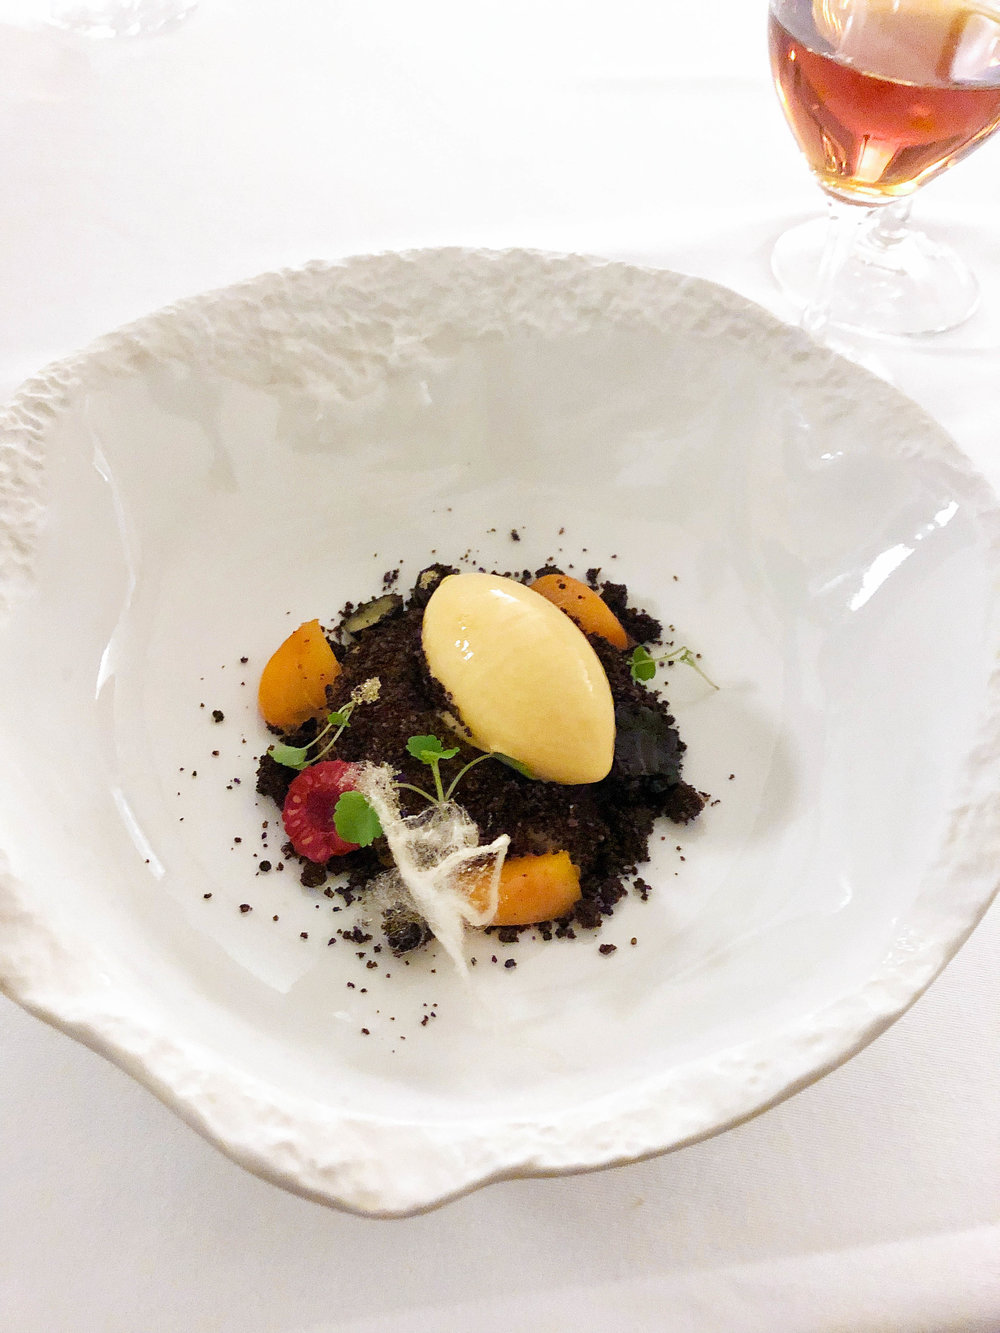 Mandarin cream over a chocolate and carob crumble with apricot-eucalyptus sorbet